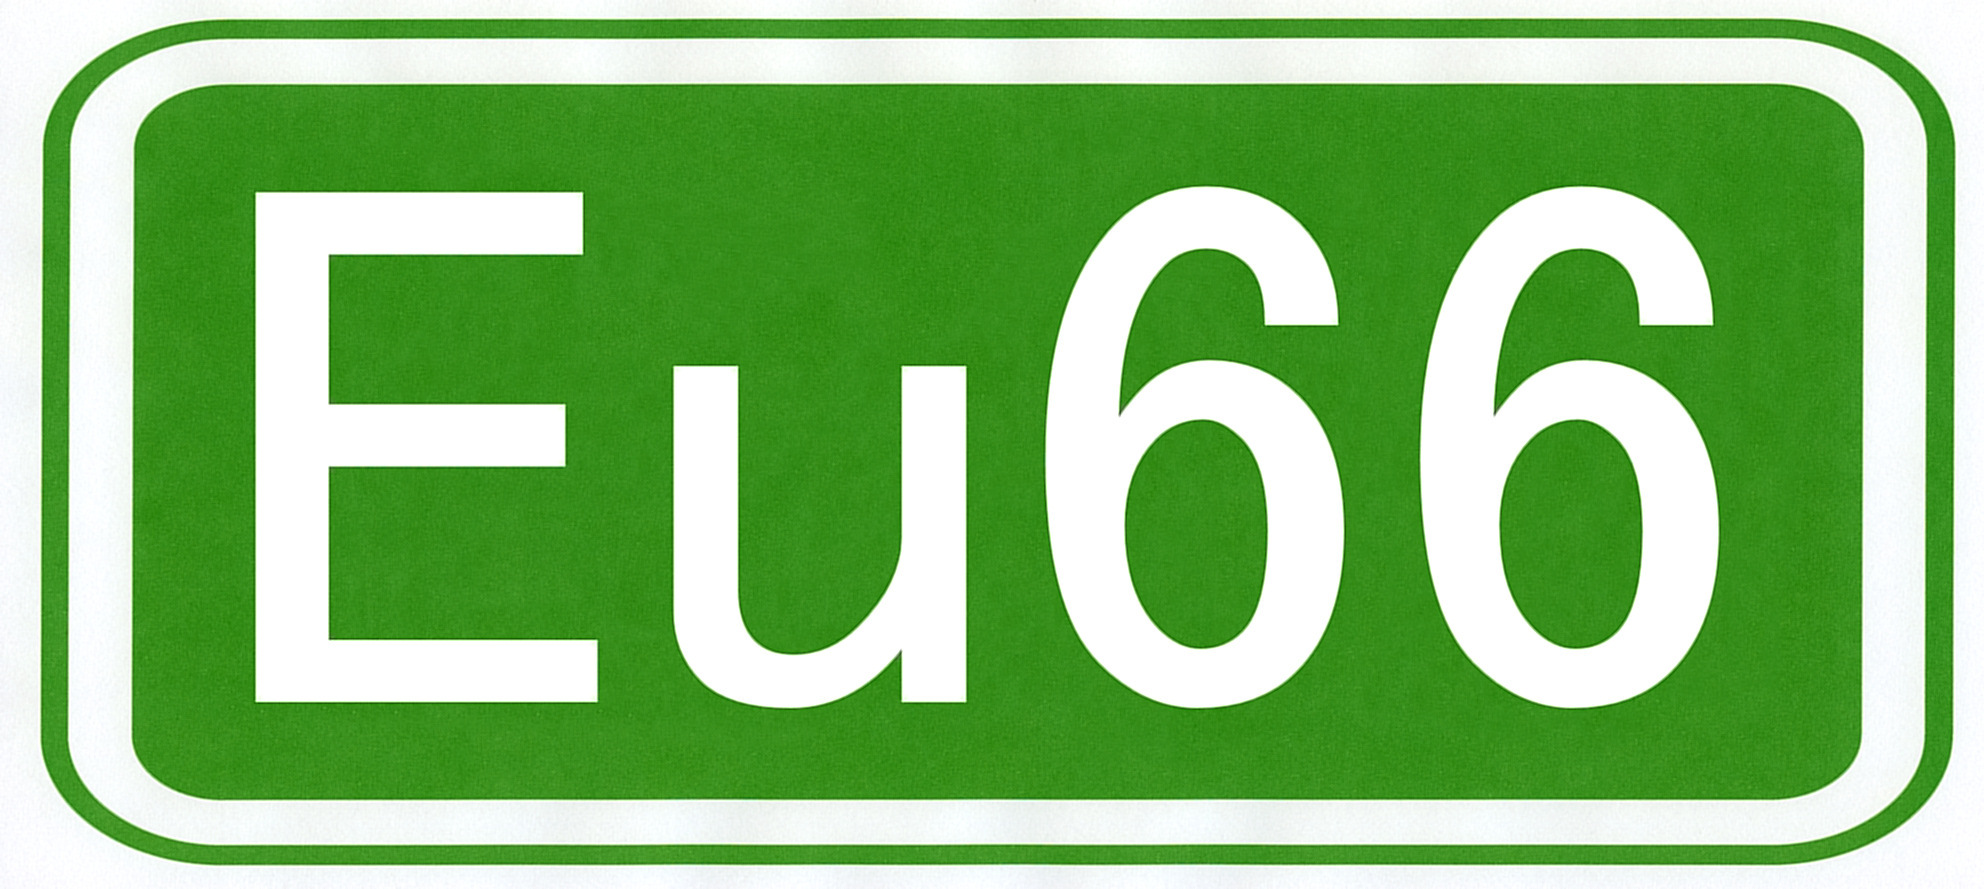 Eu66 signaletique